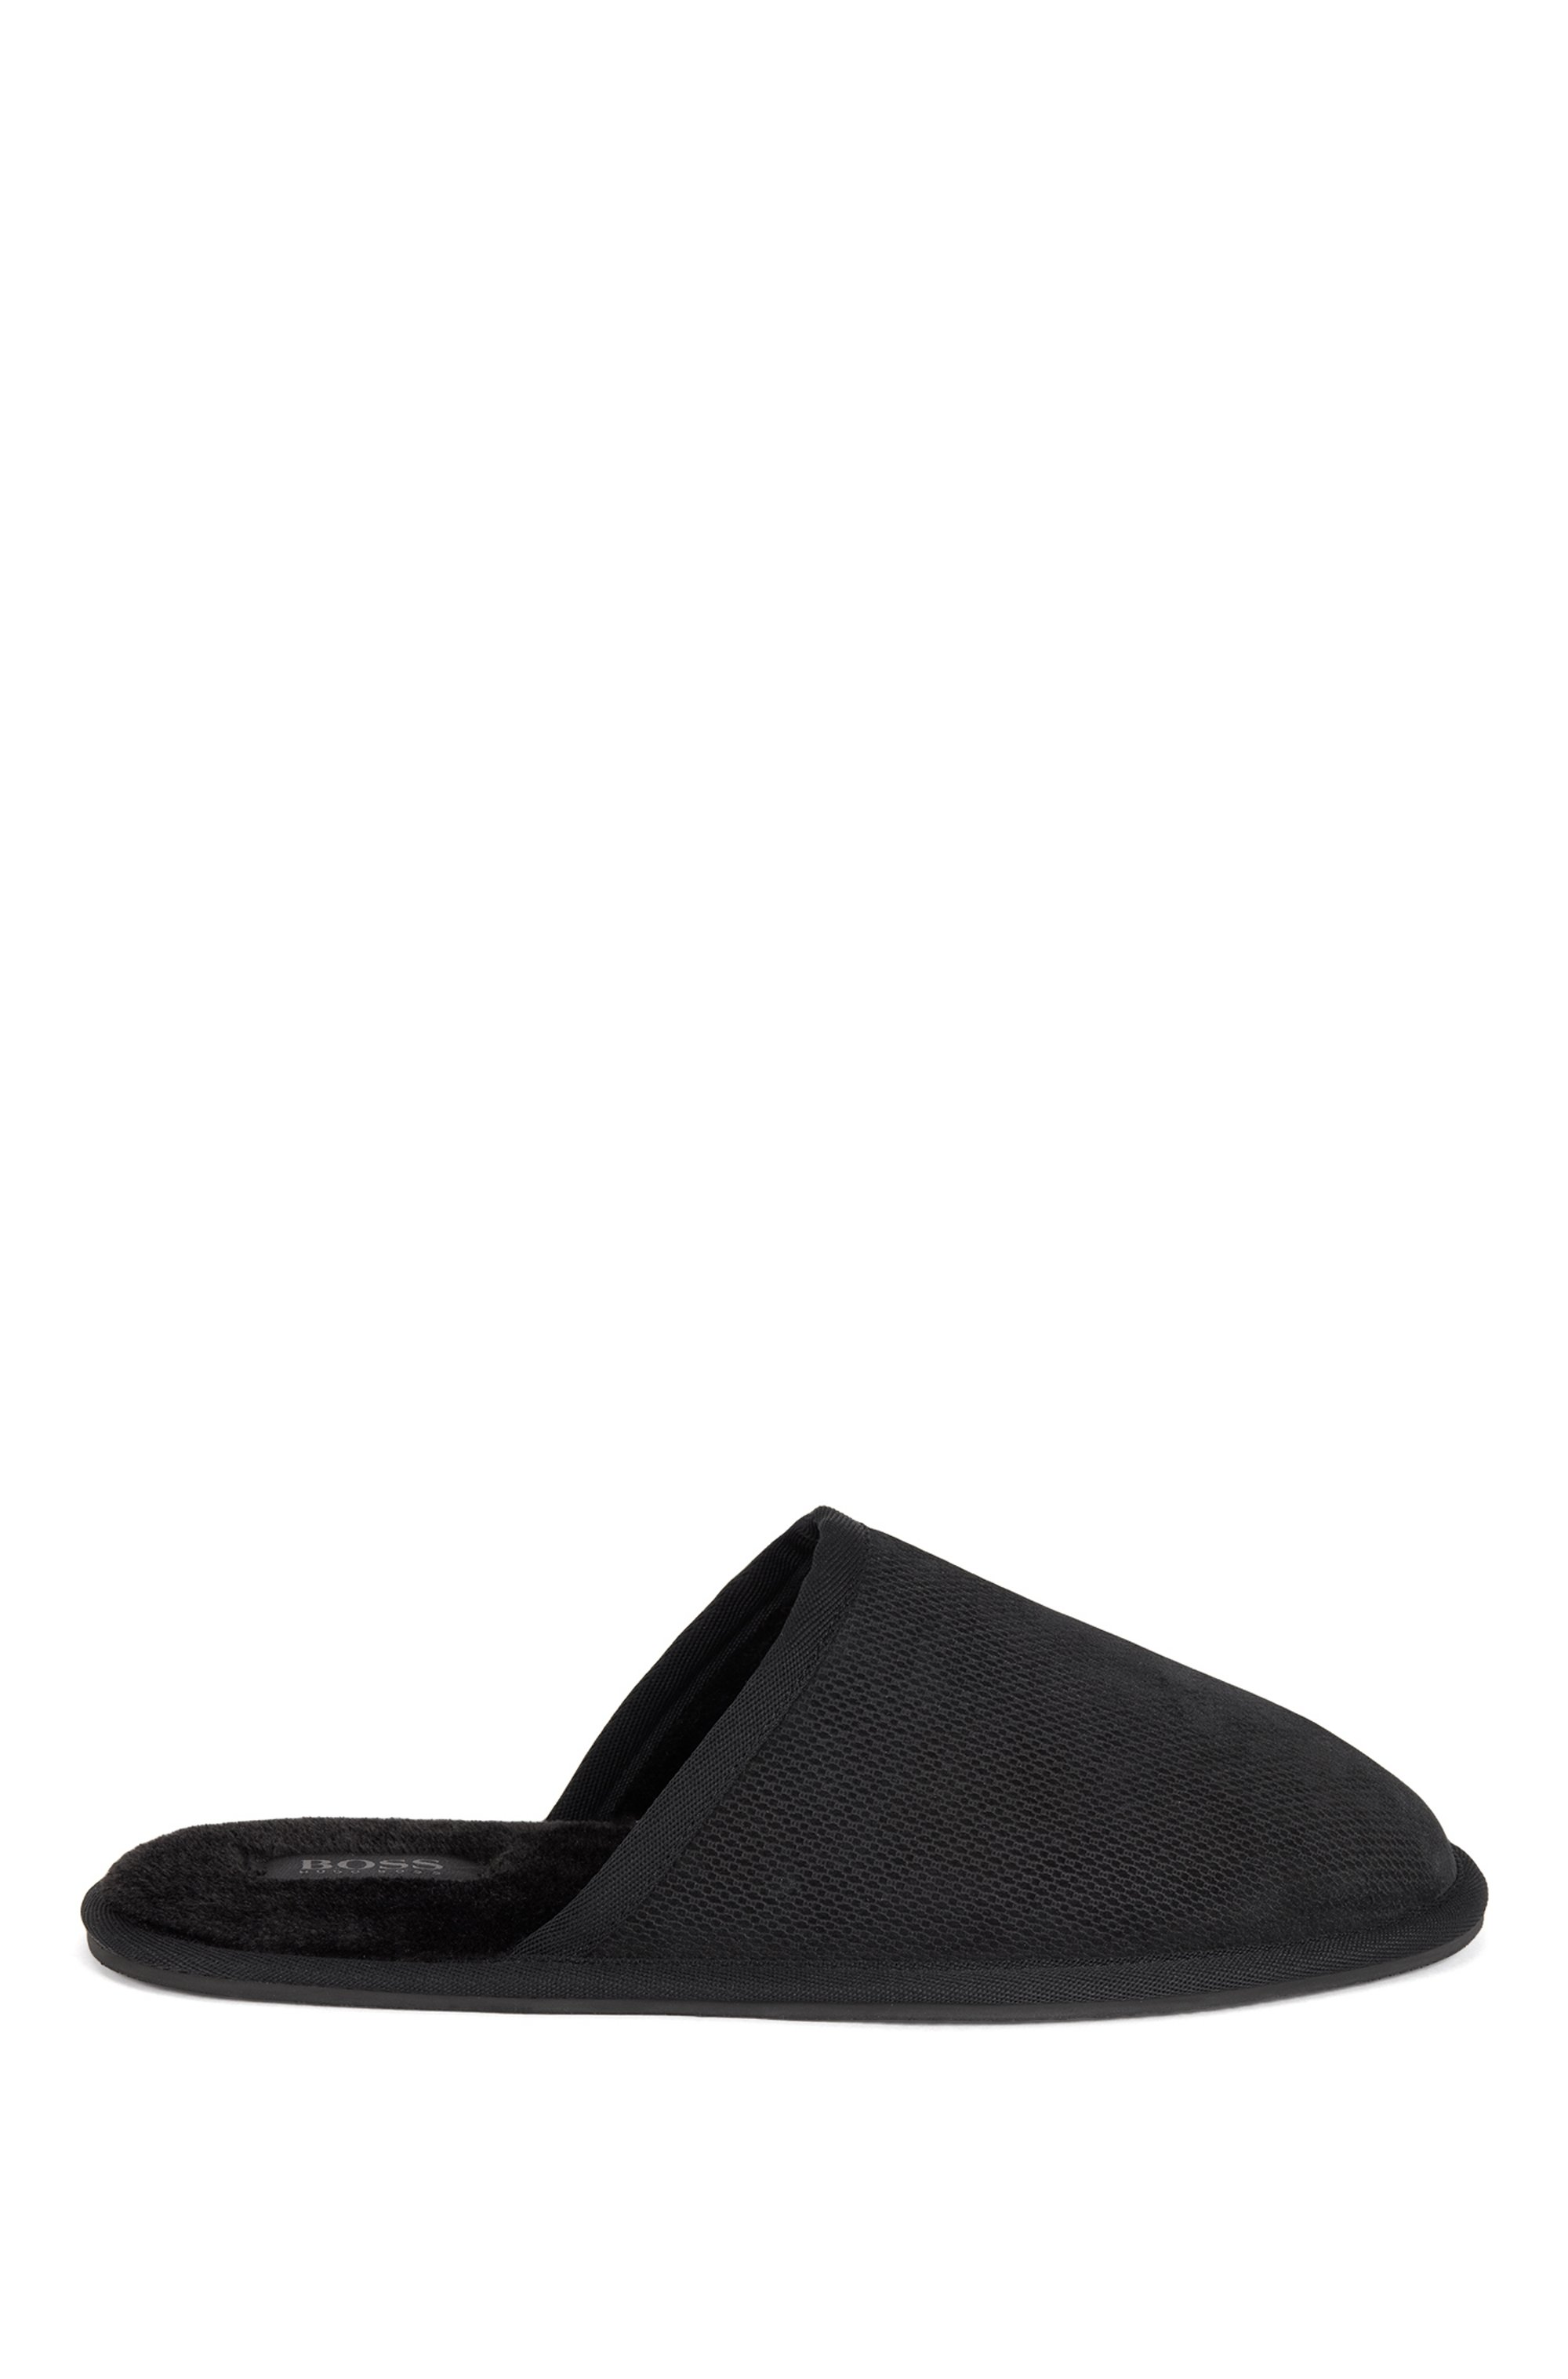 Monogrammed slippers in suede with faux-fur lining, Black